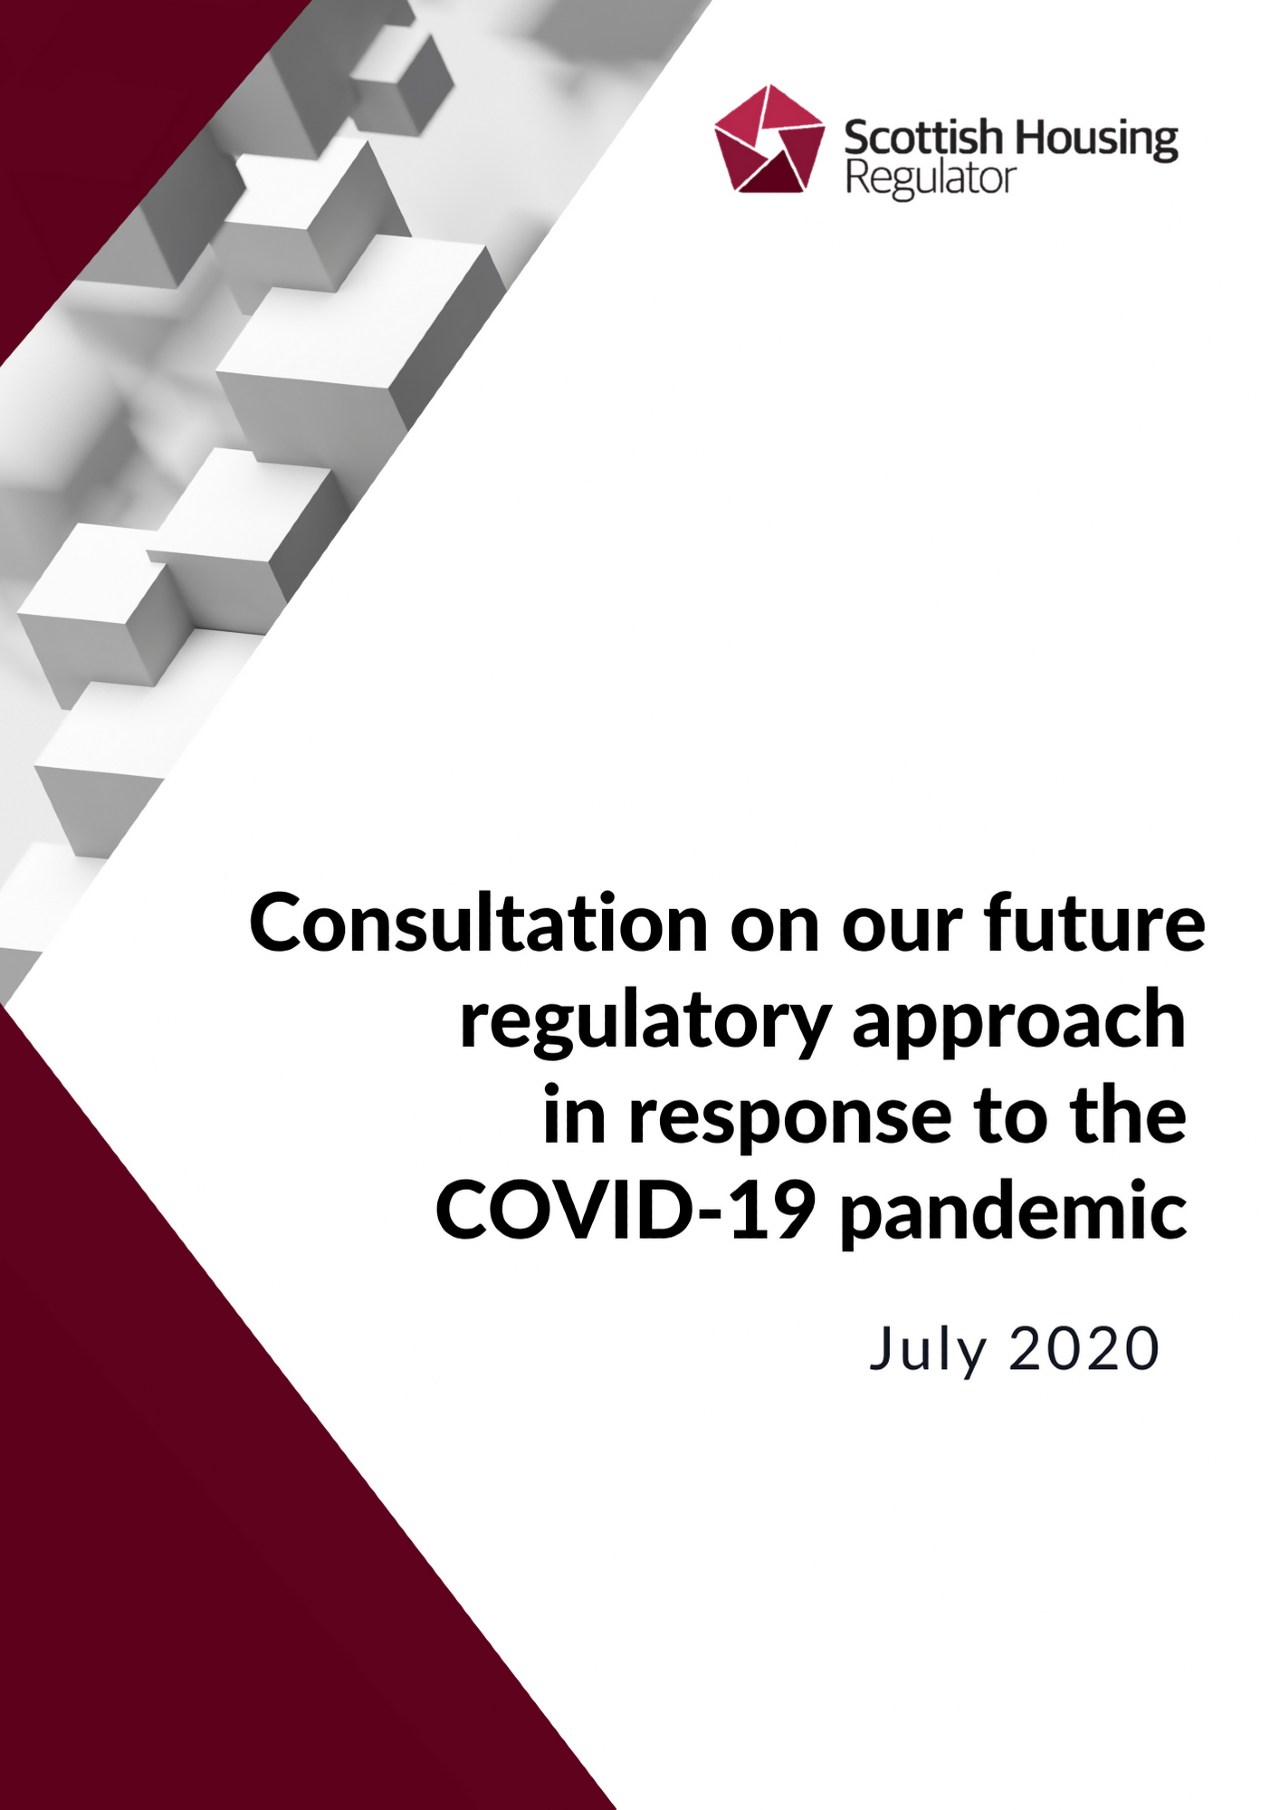 Consultation on our future approach to the Covid-19 Pandemic